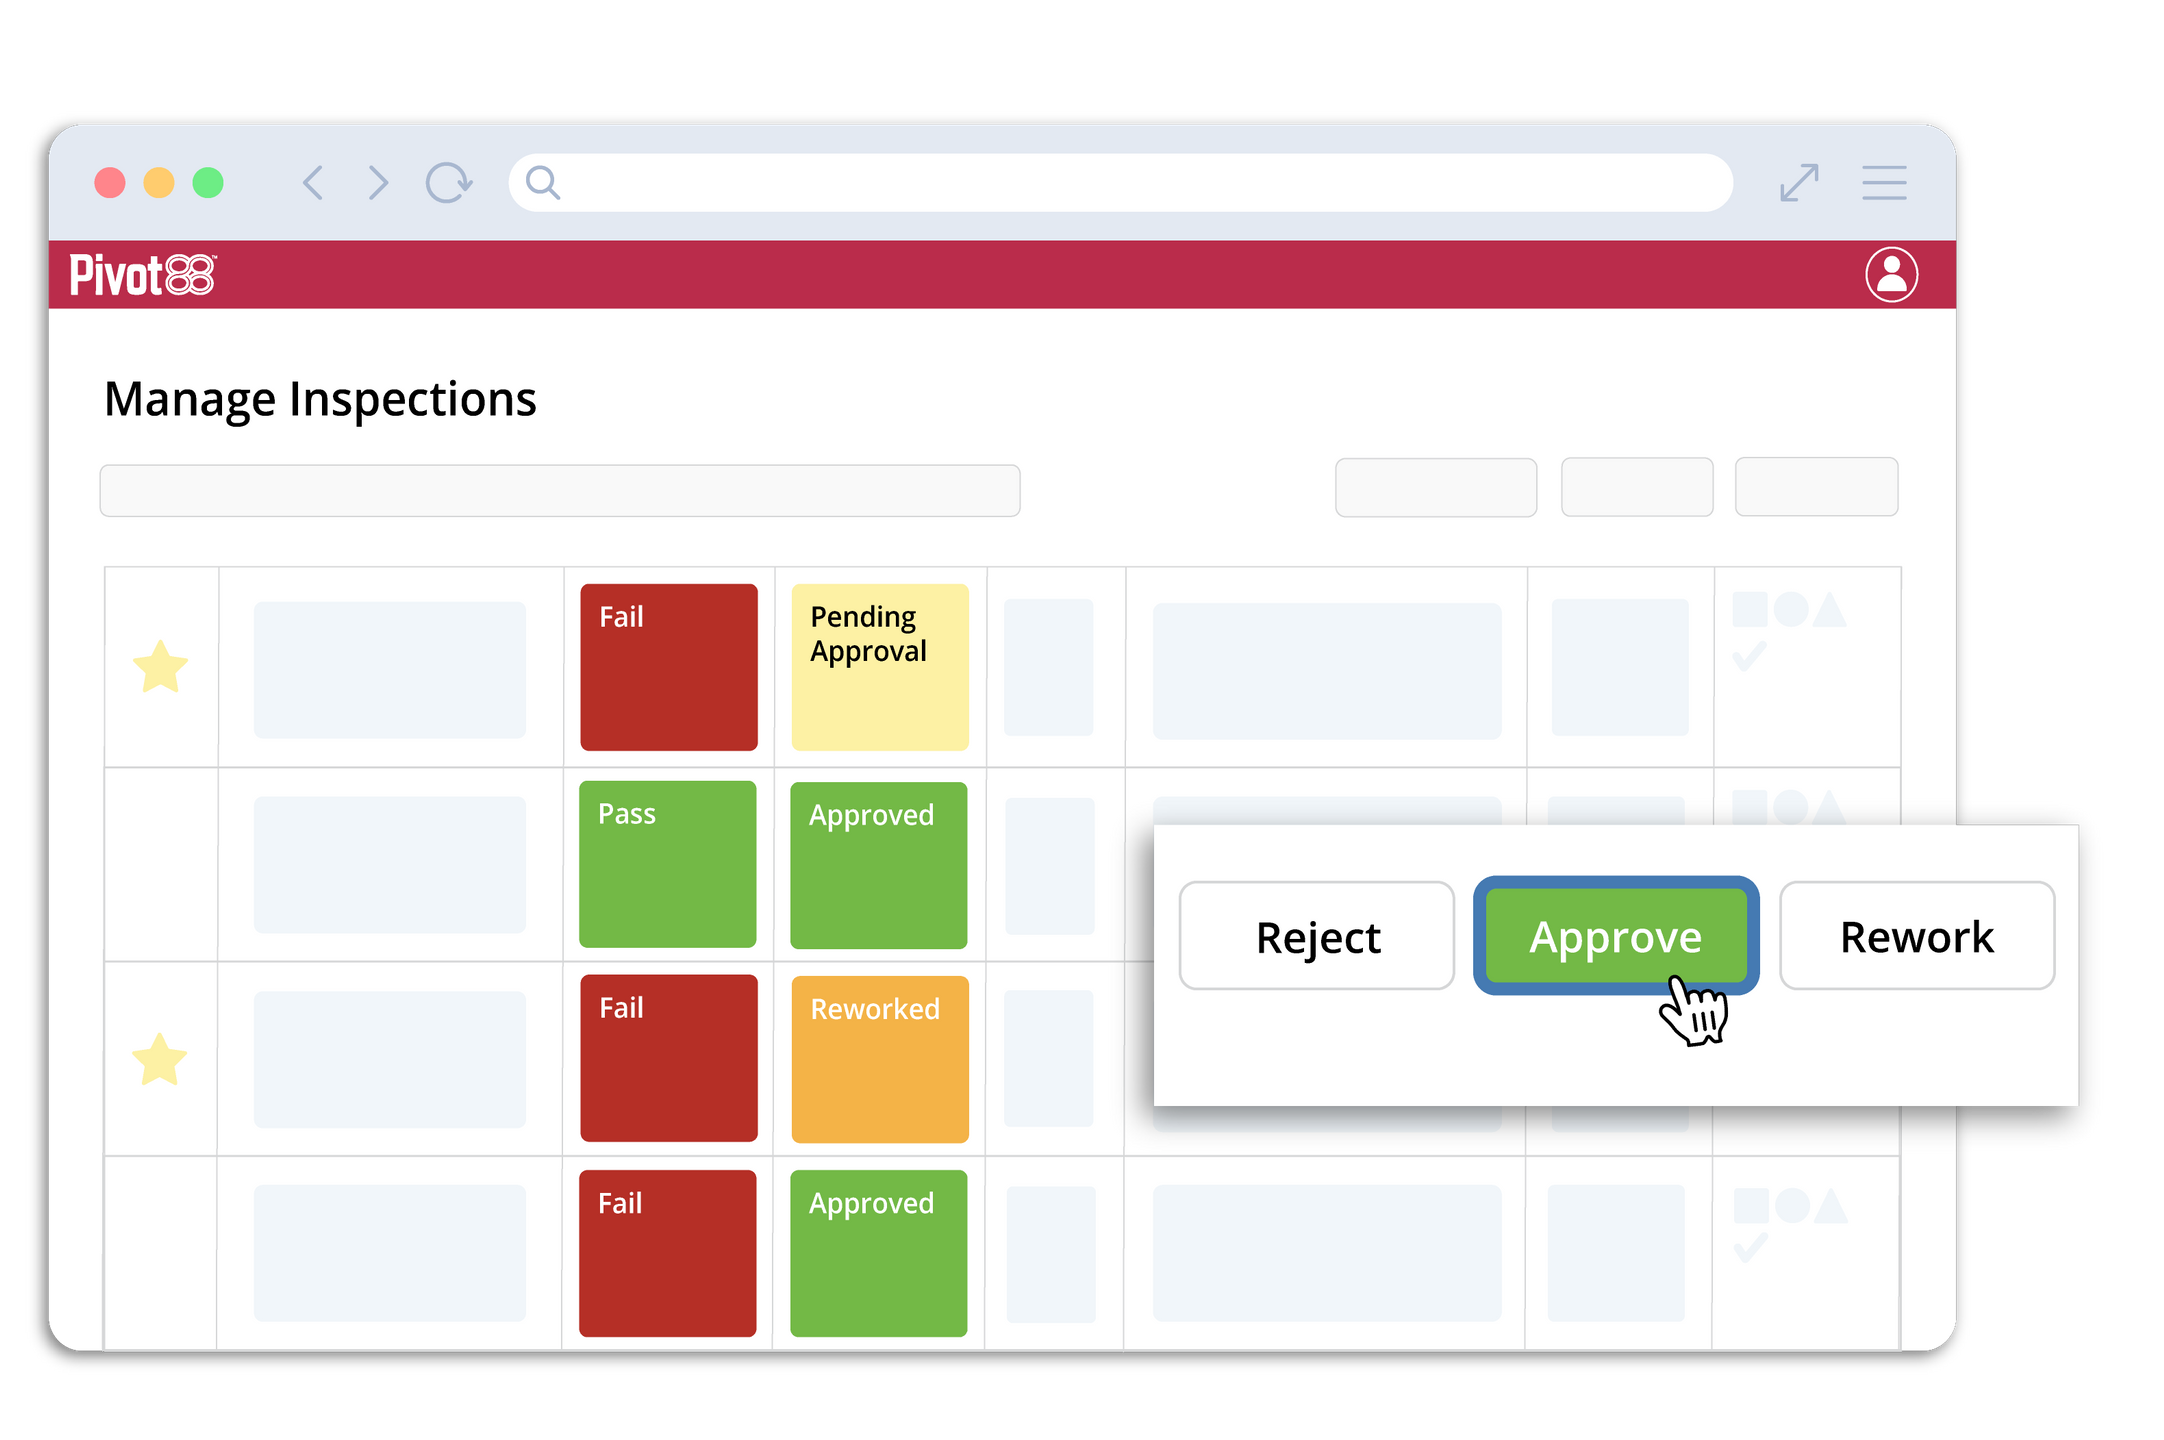 manage inspections page with approval selection